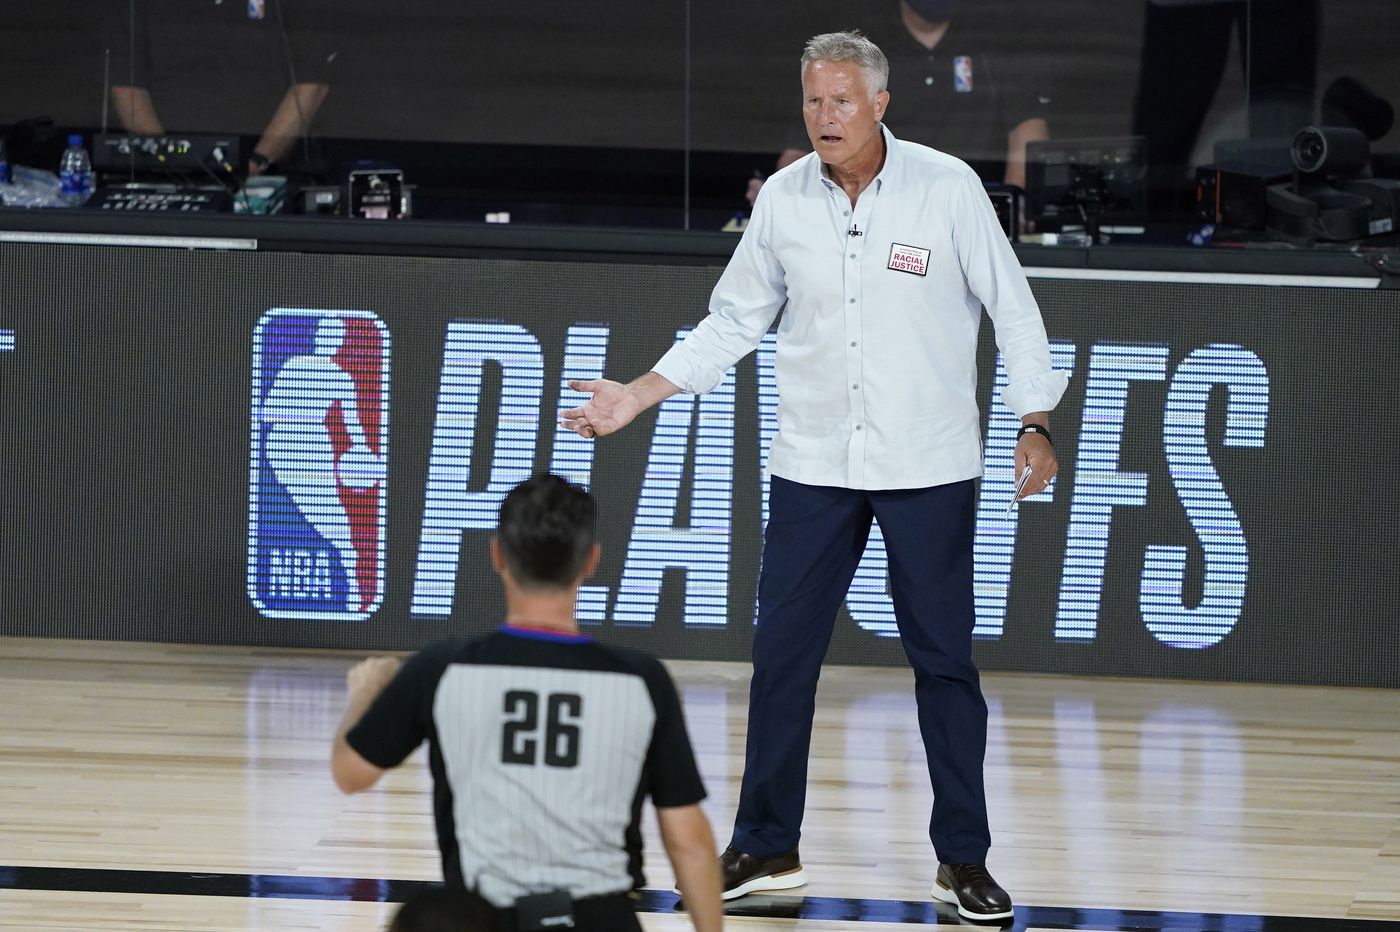 Sixers' Brett Brown had no answers in embarrassing Game 2 loss to the Celtics | David Murphy